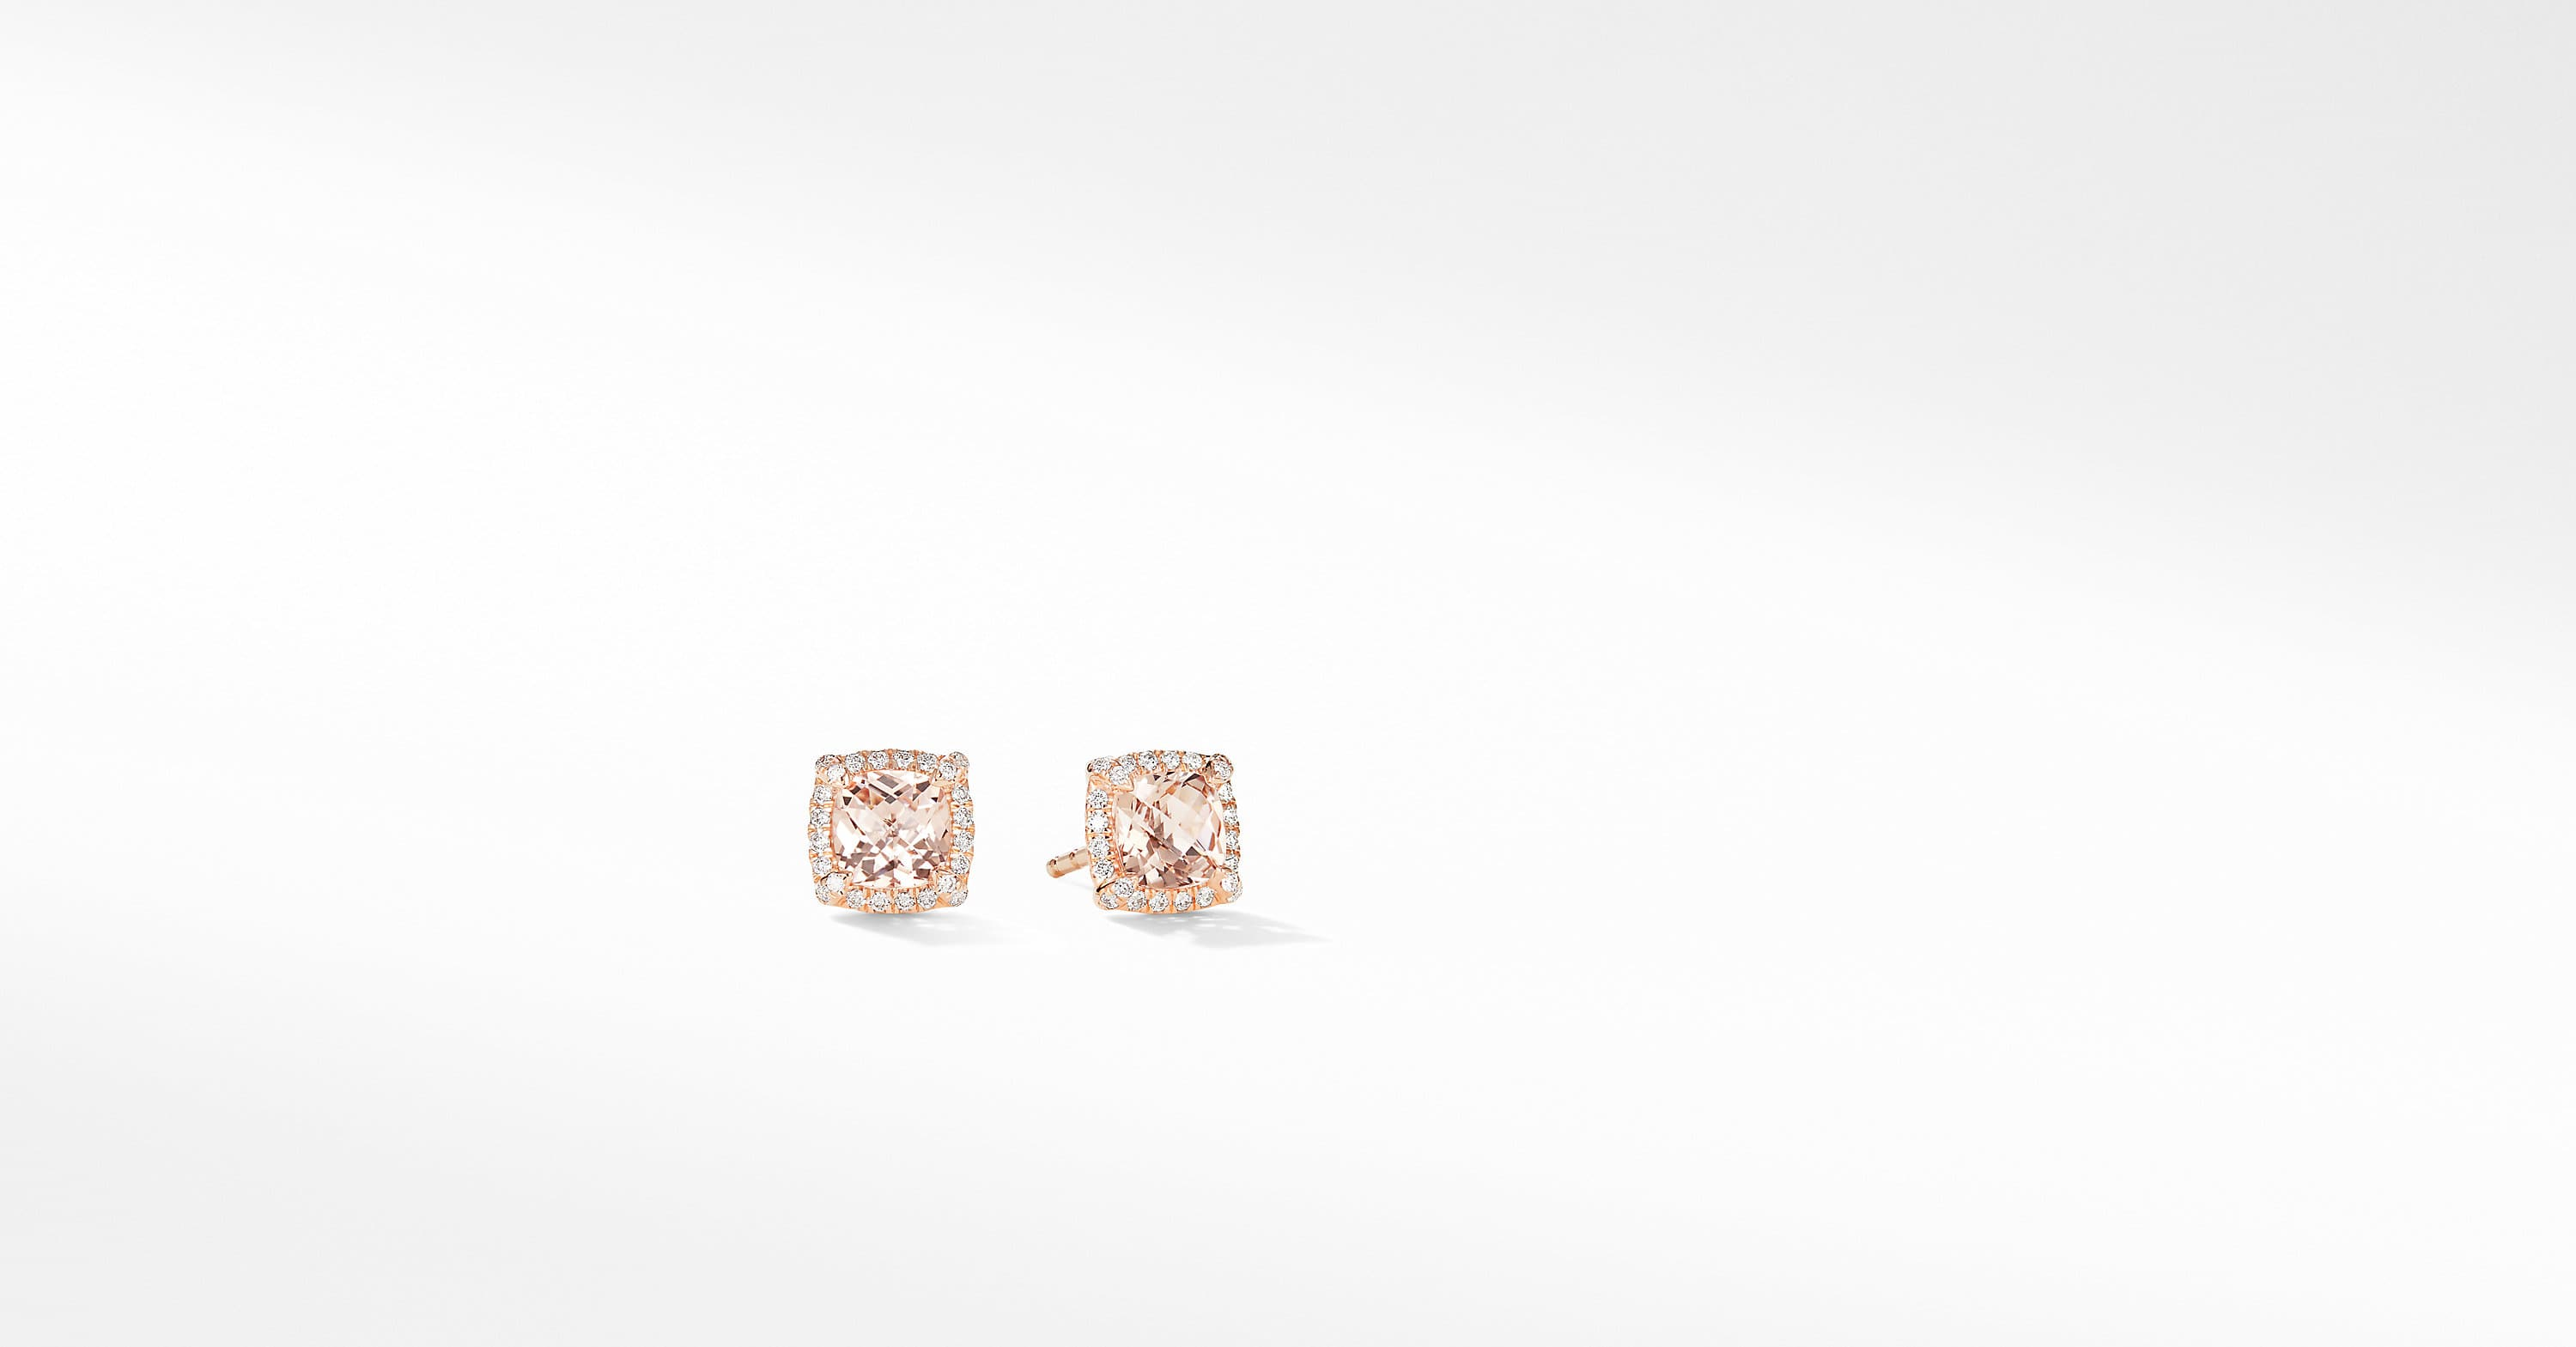 Petite Chatelaine Pavé Bezel Stud Earrings in 18K Rose Gold, 5m